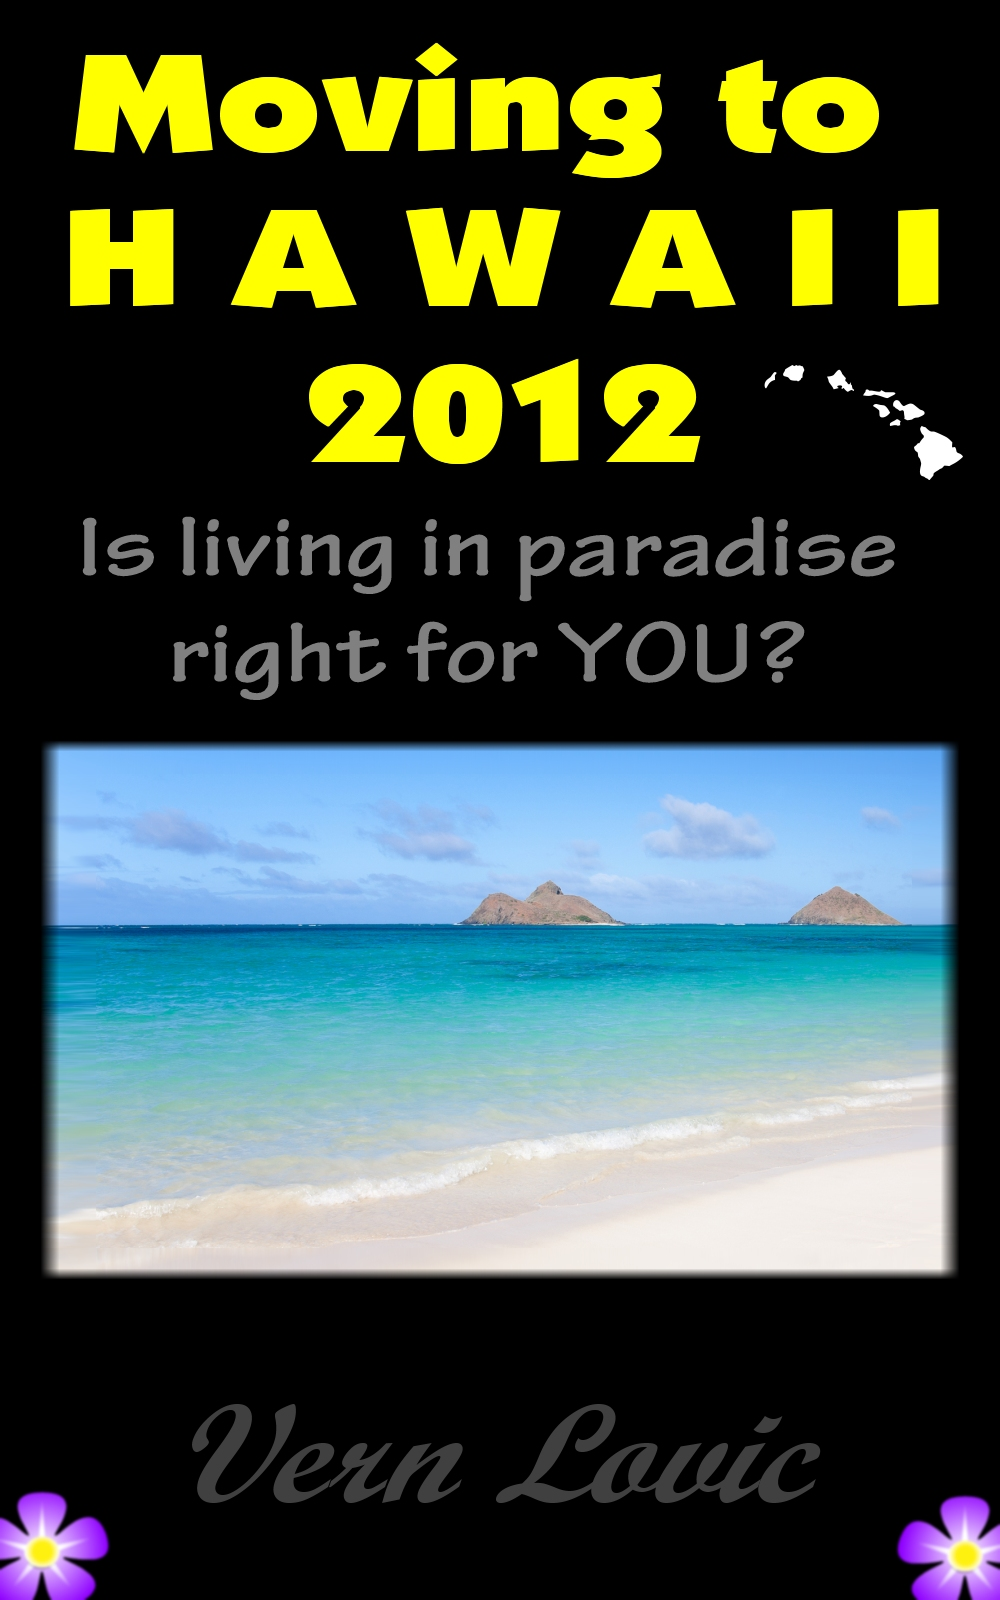 Vern Lovic - Moving to Hawaii 2012 - Is Living in Paradise for You?